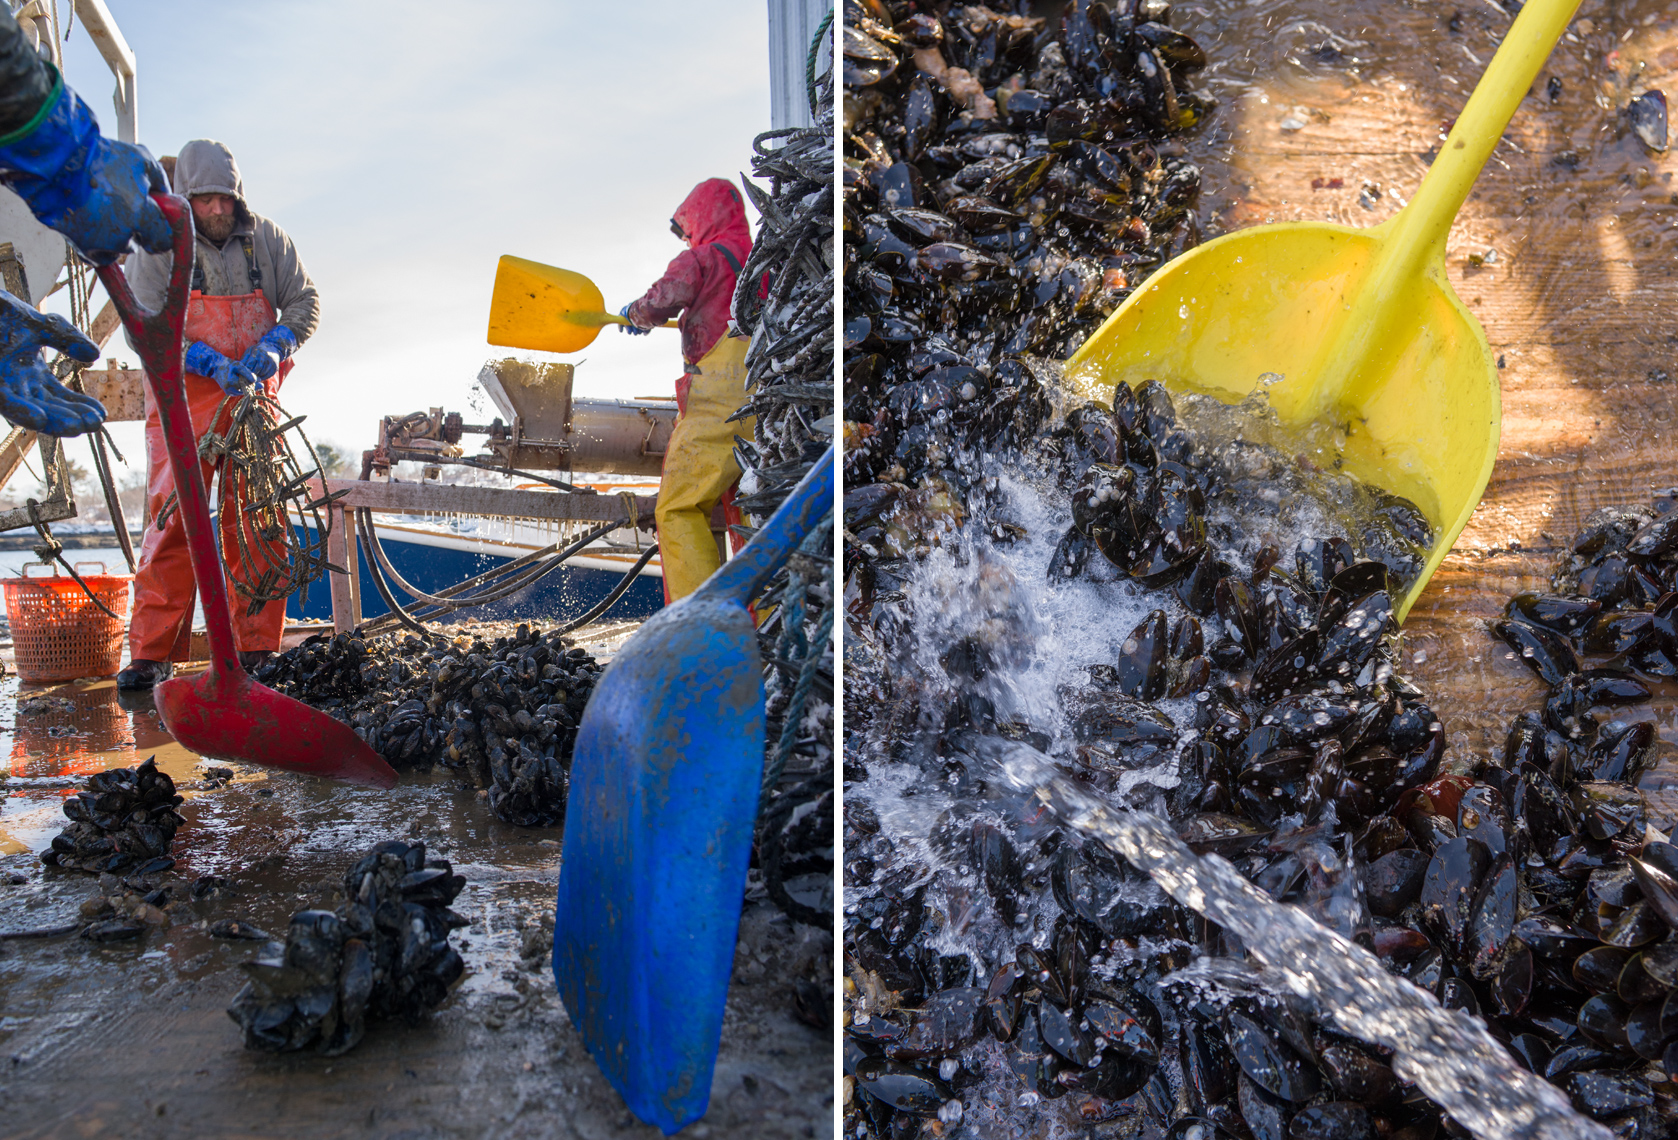 collecting and cleaning mussels